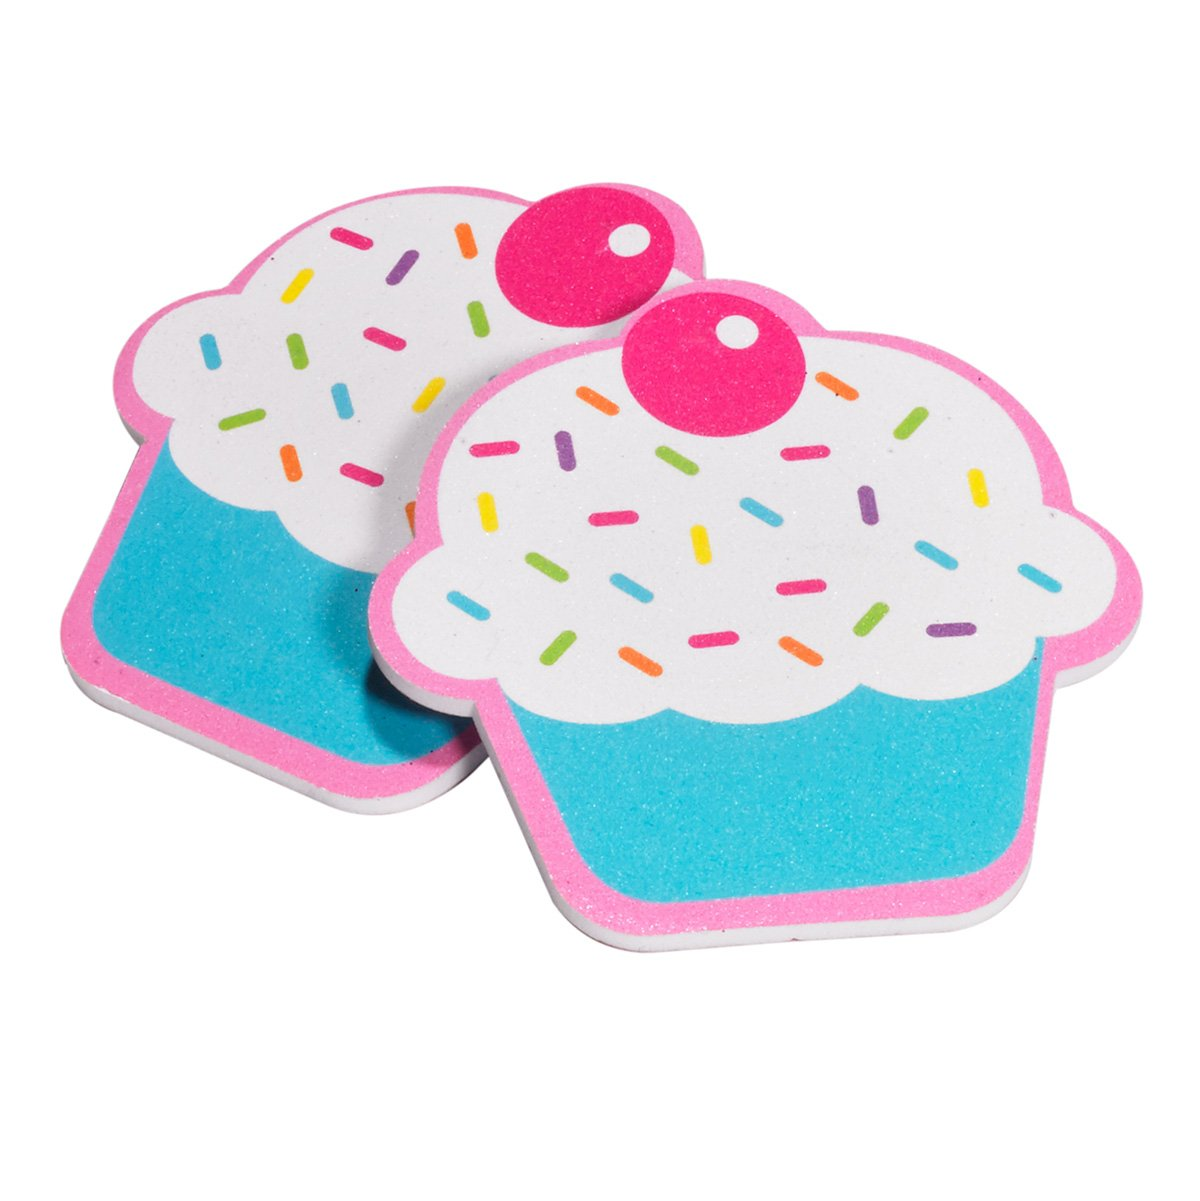 3C4G Sugar Shack Deluxe Pedi Party, Set of 2 by 3C4G (Image #8)